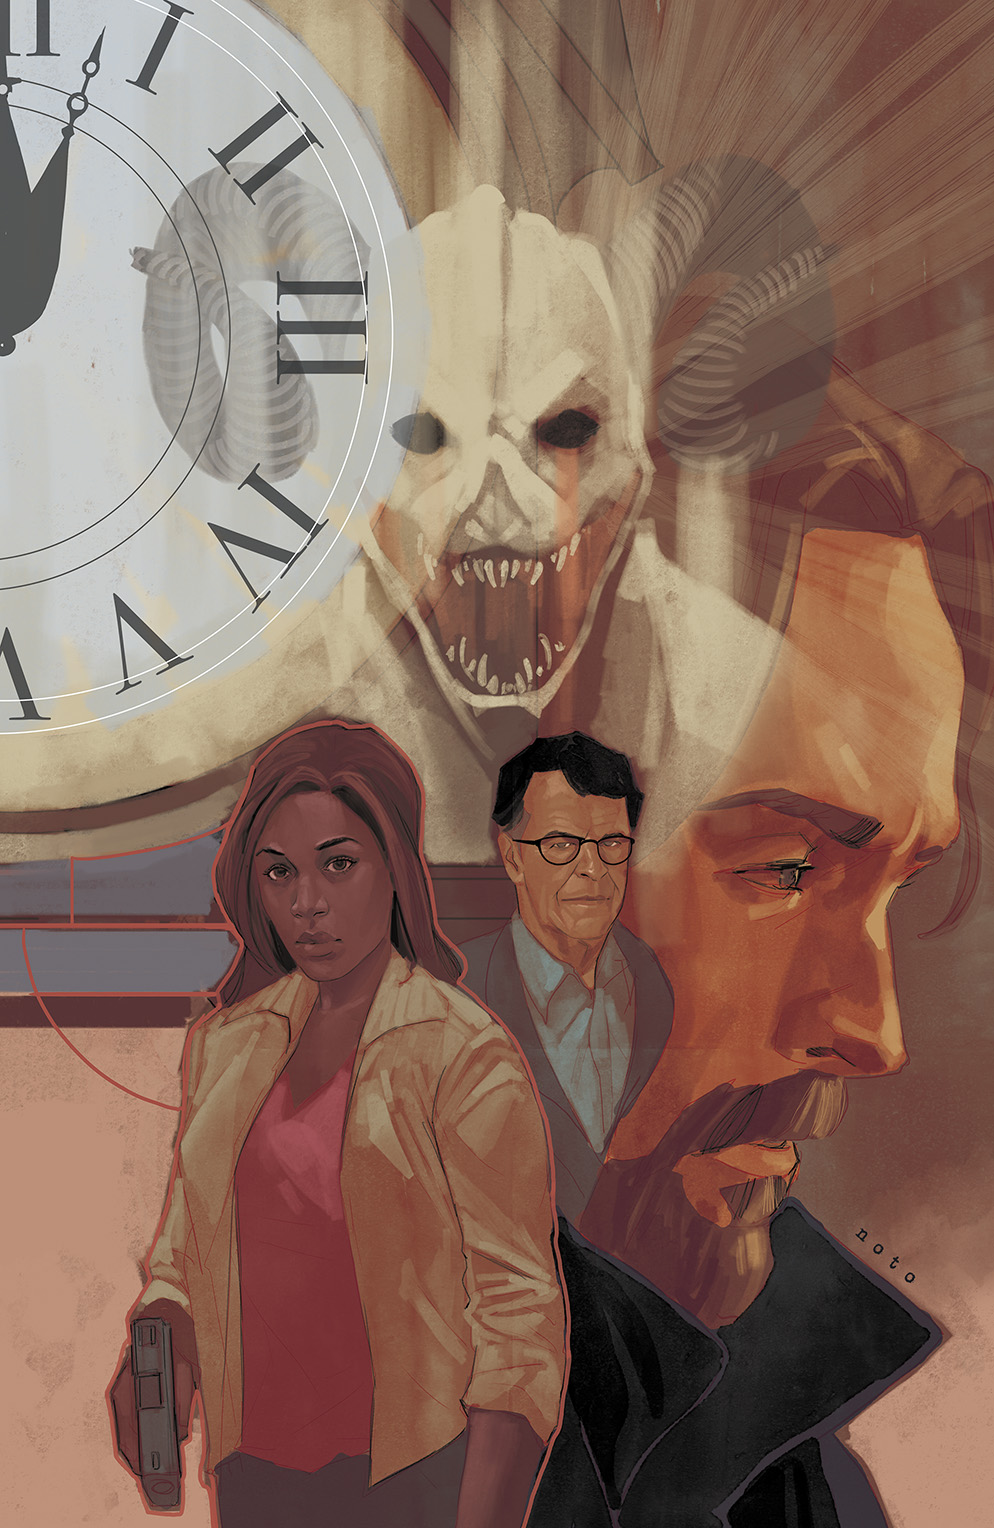 Sleepy Hollow #4 Cover A by Phil Noto